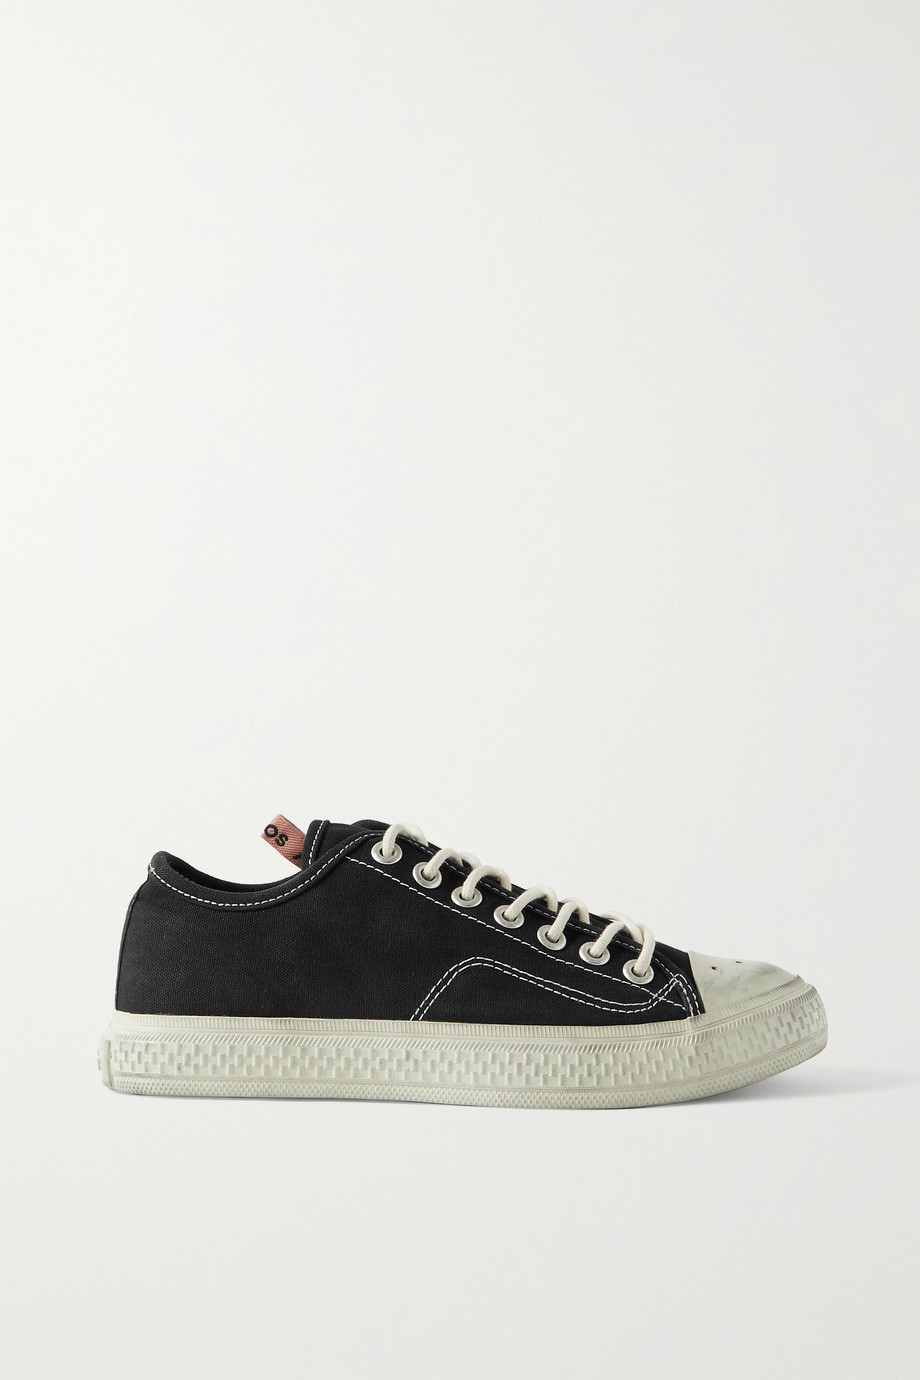 ACNE STUDIOS Distressed canvas sneakers